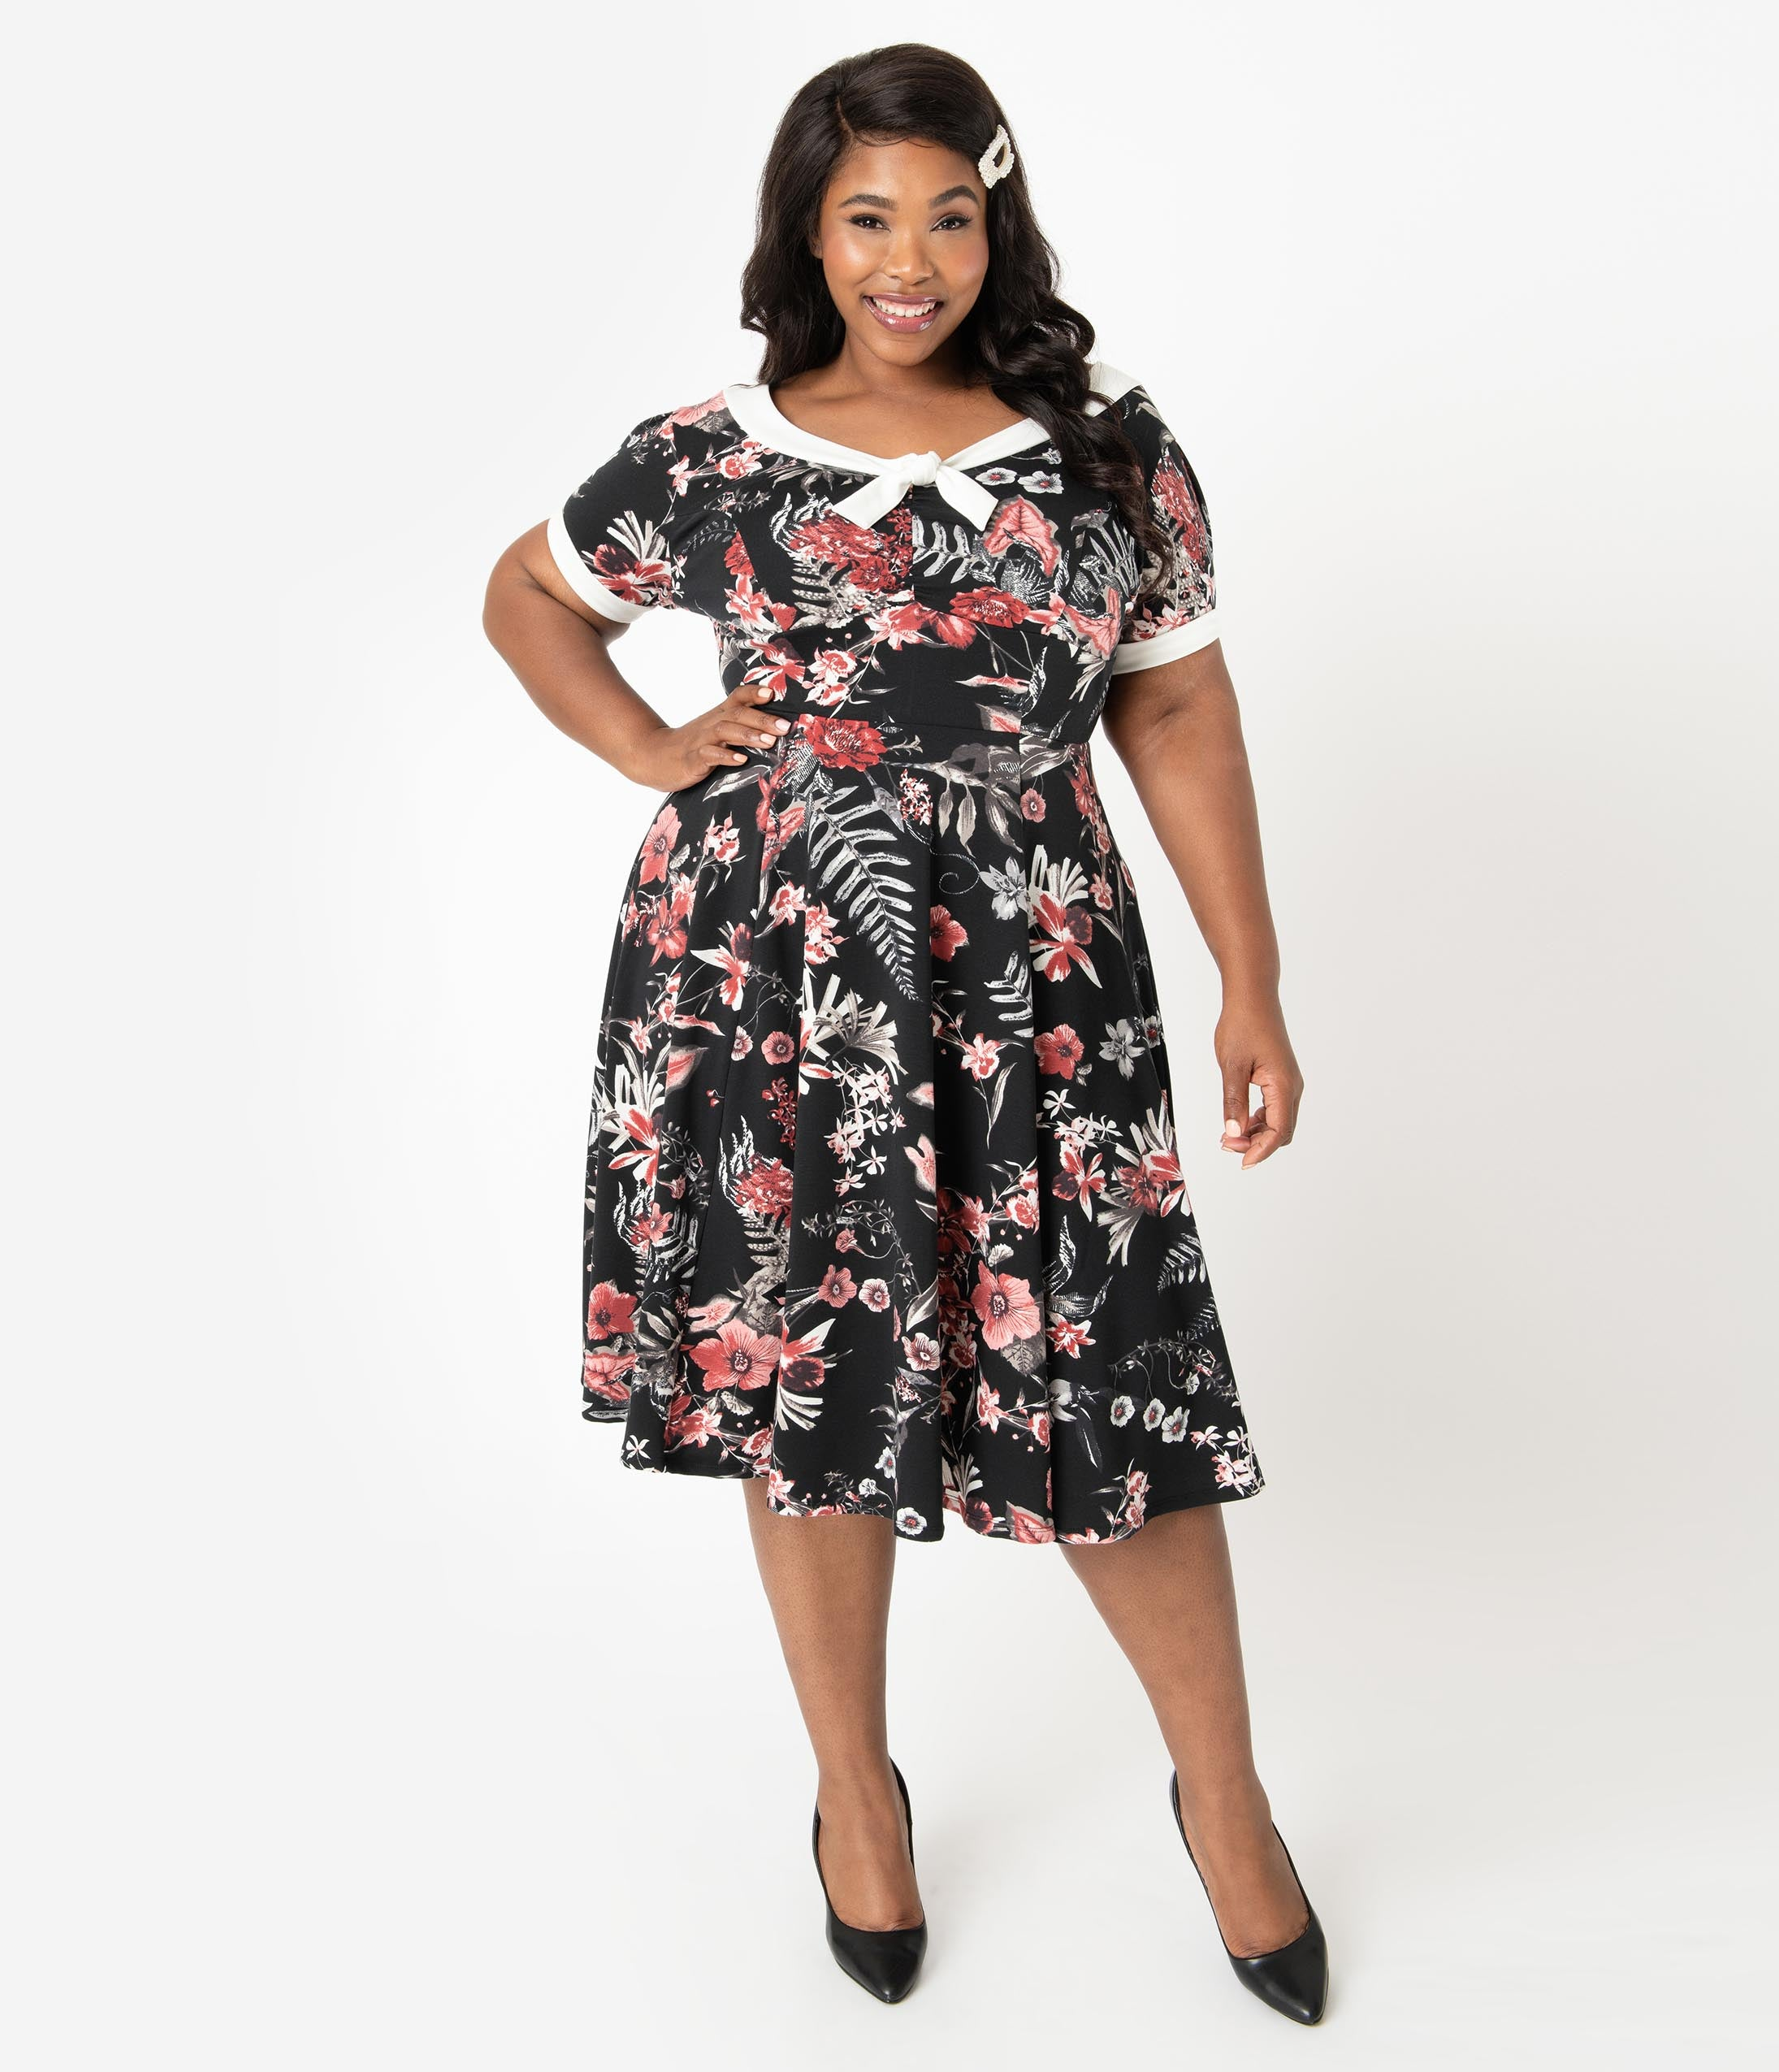 1940s Plus Size Dresses | Swing Dress, Tea Dress Unique Vintage Plus Size 1940S Style Black  Red Floral Natalie Swing Dress $88.00 AT vintagedancer.com